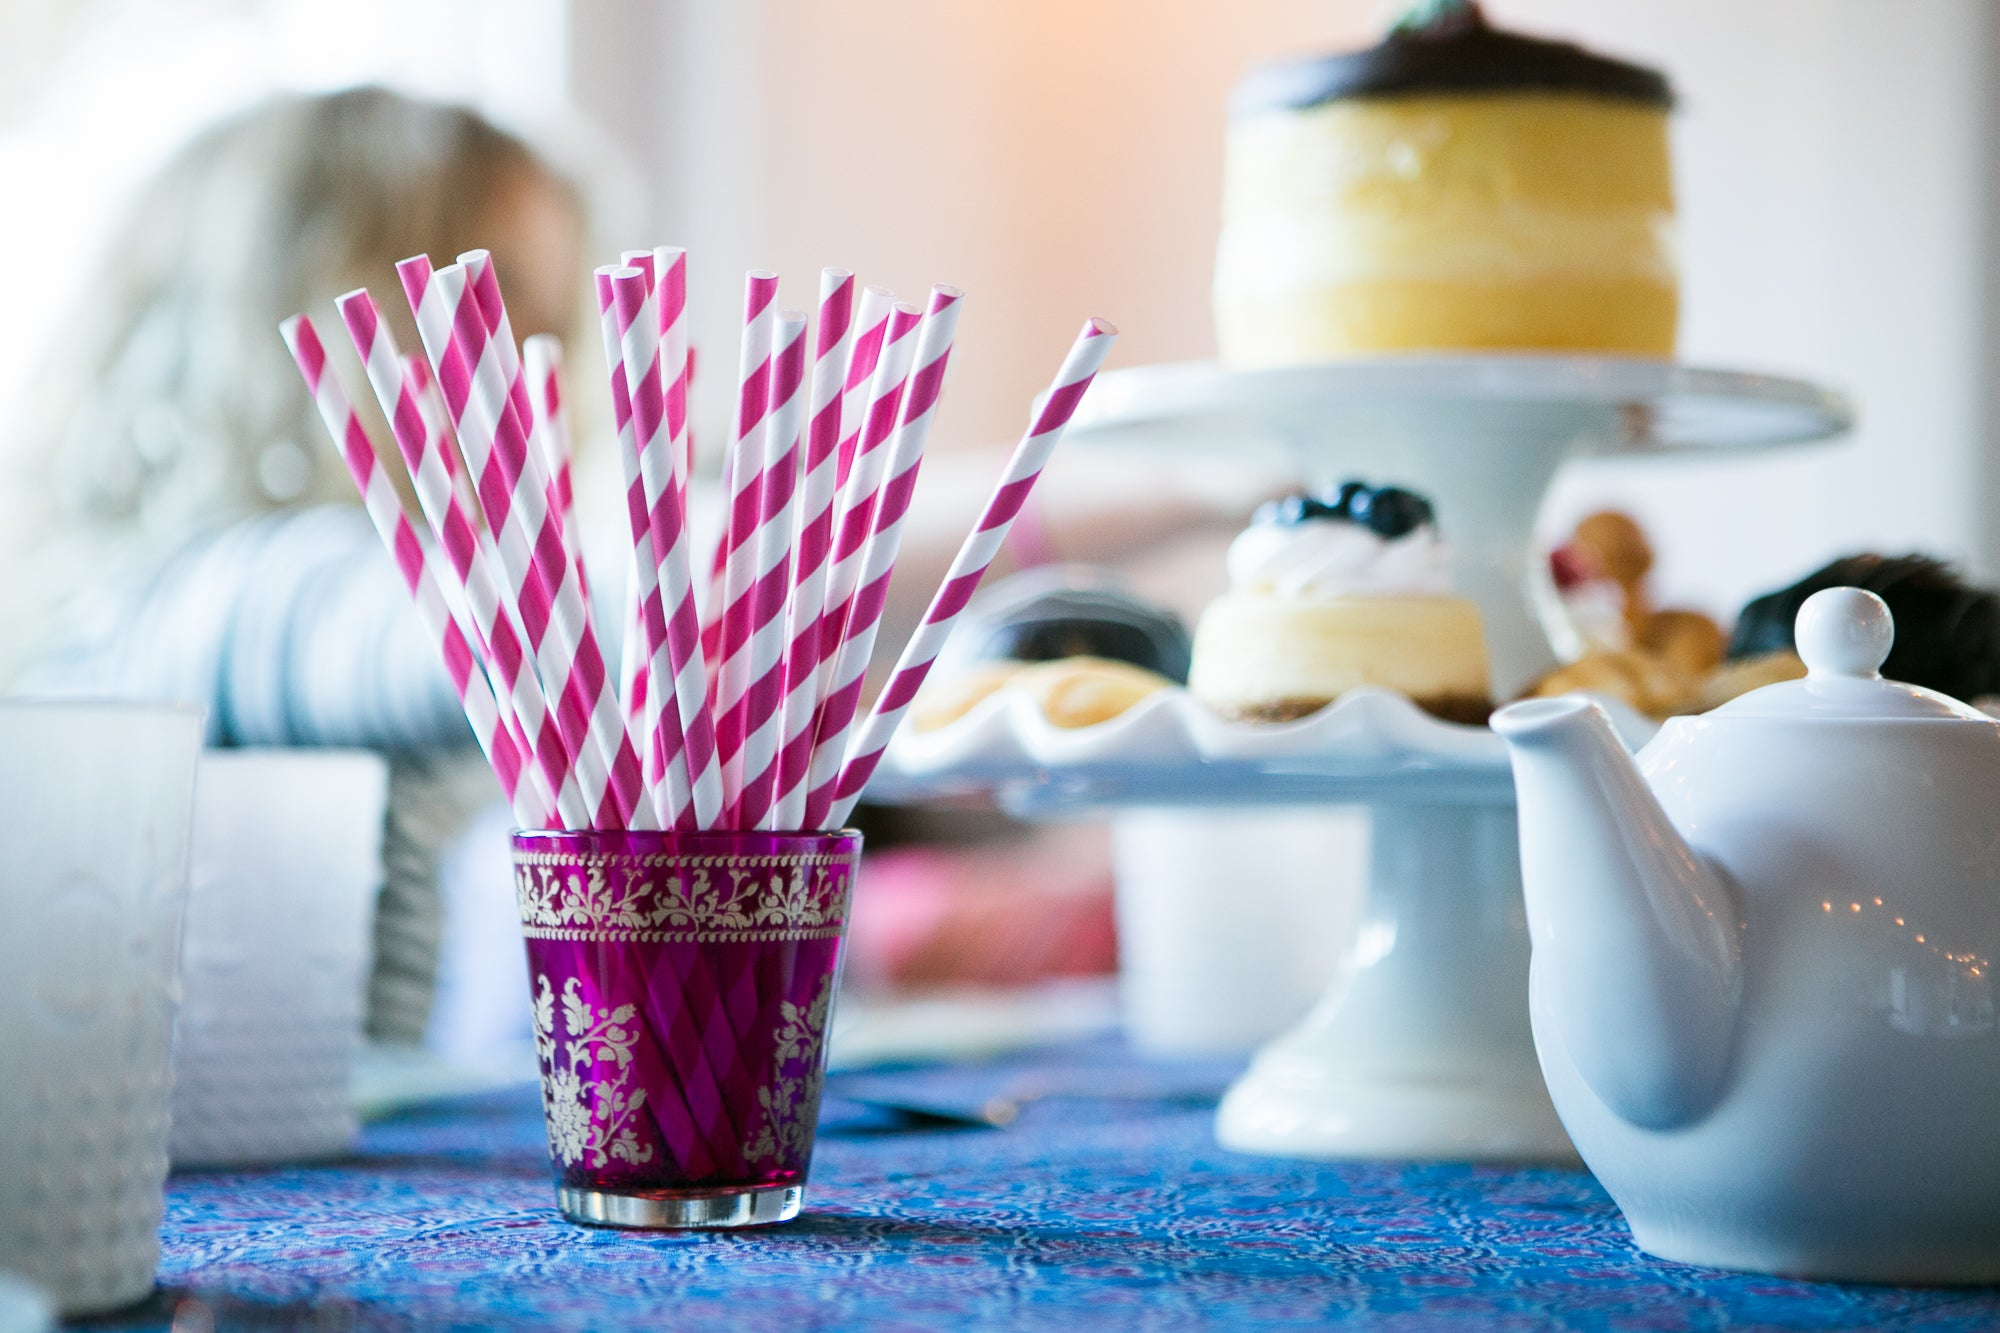 Fuchsia Striped Patterned Party Paper Straws (12 PACK) - PaperLanternStore.com - Paper Lanterns, Decor, Party Lights & More